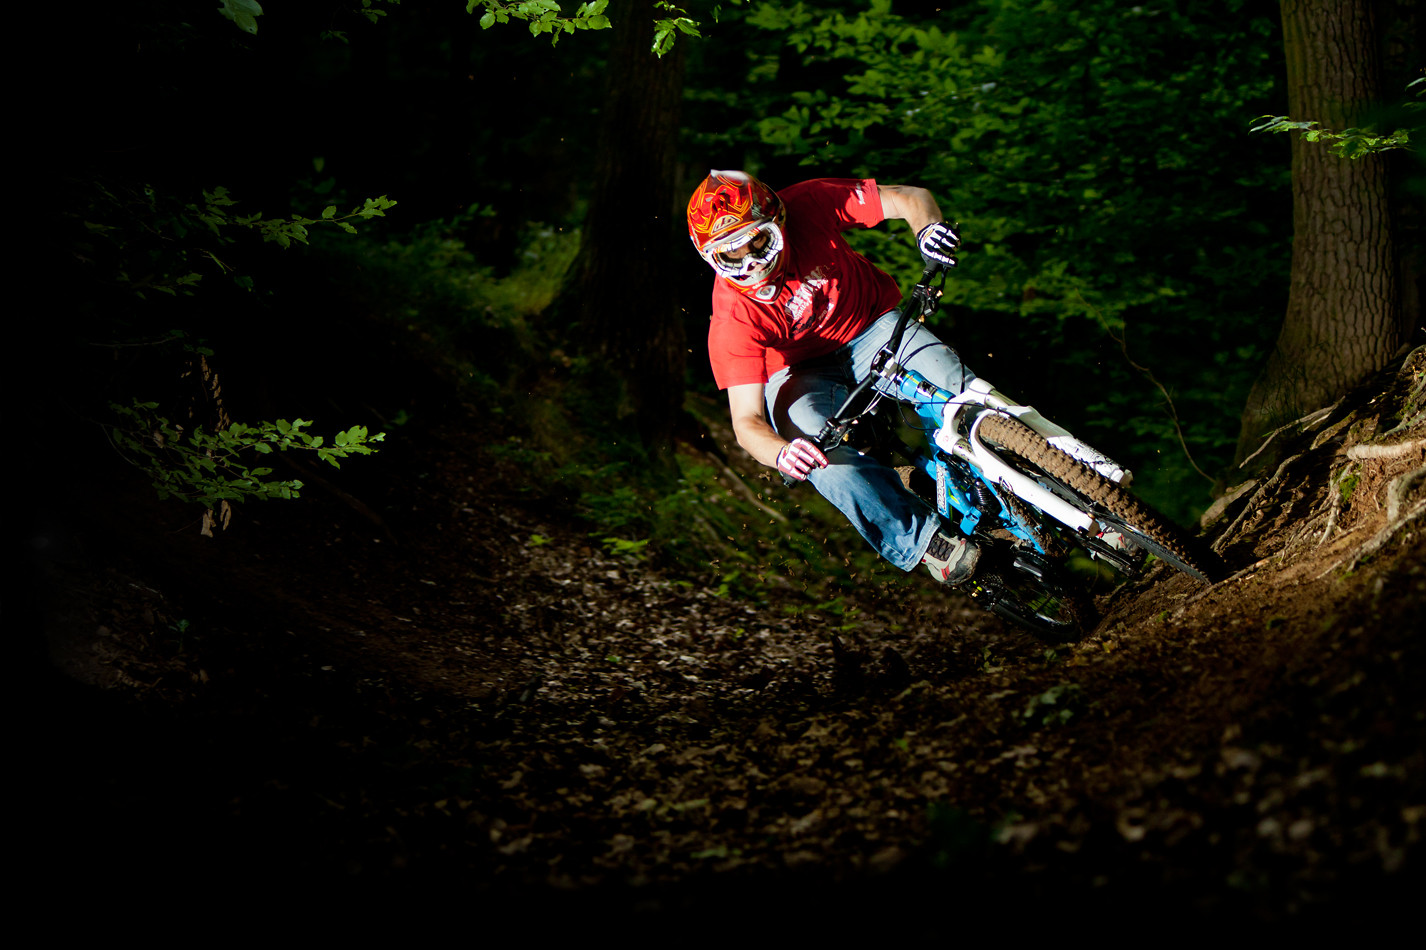 flash1 - Kusa - Mountain Biking Pictures - Vital MTB